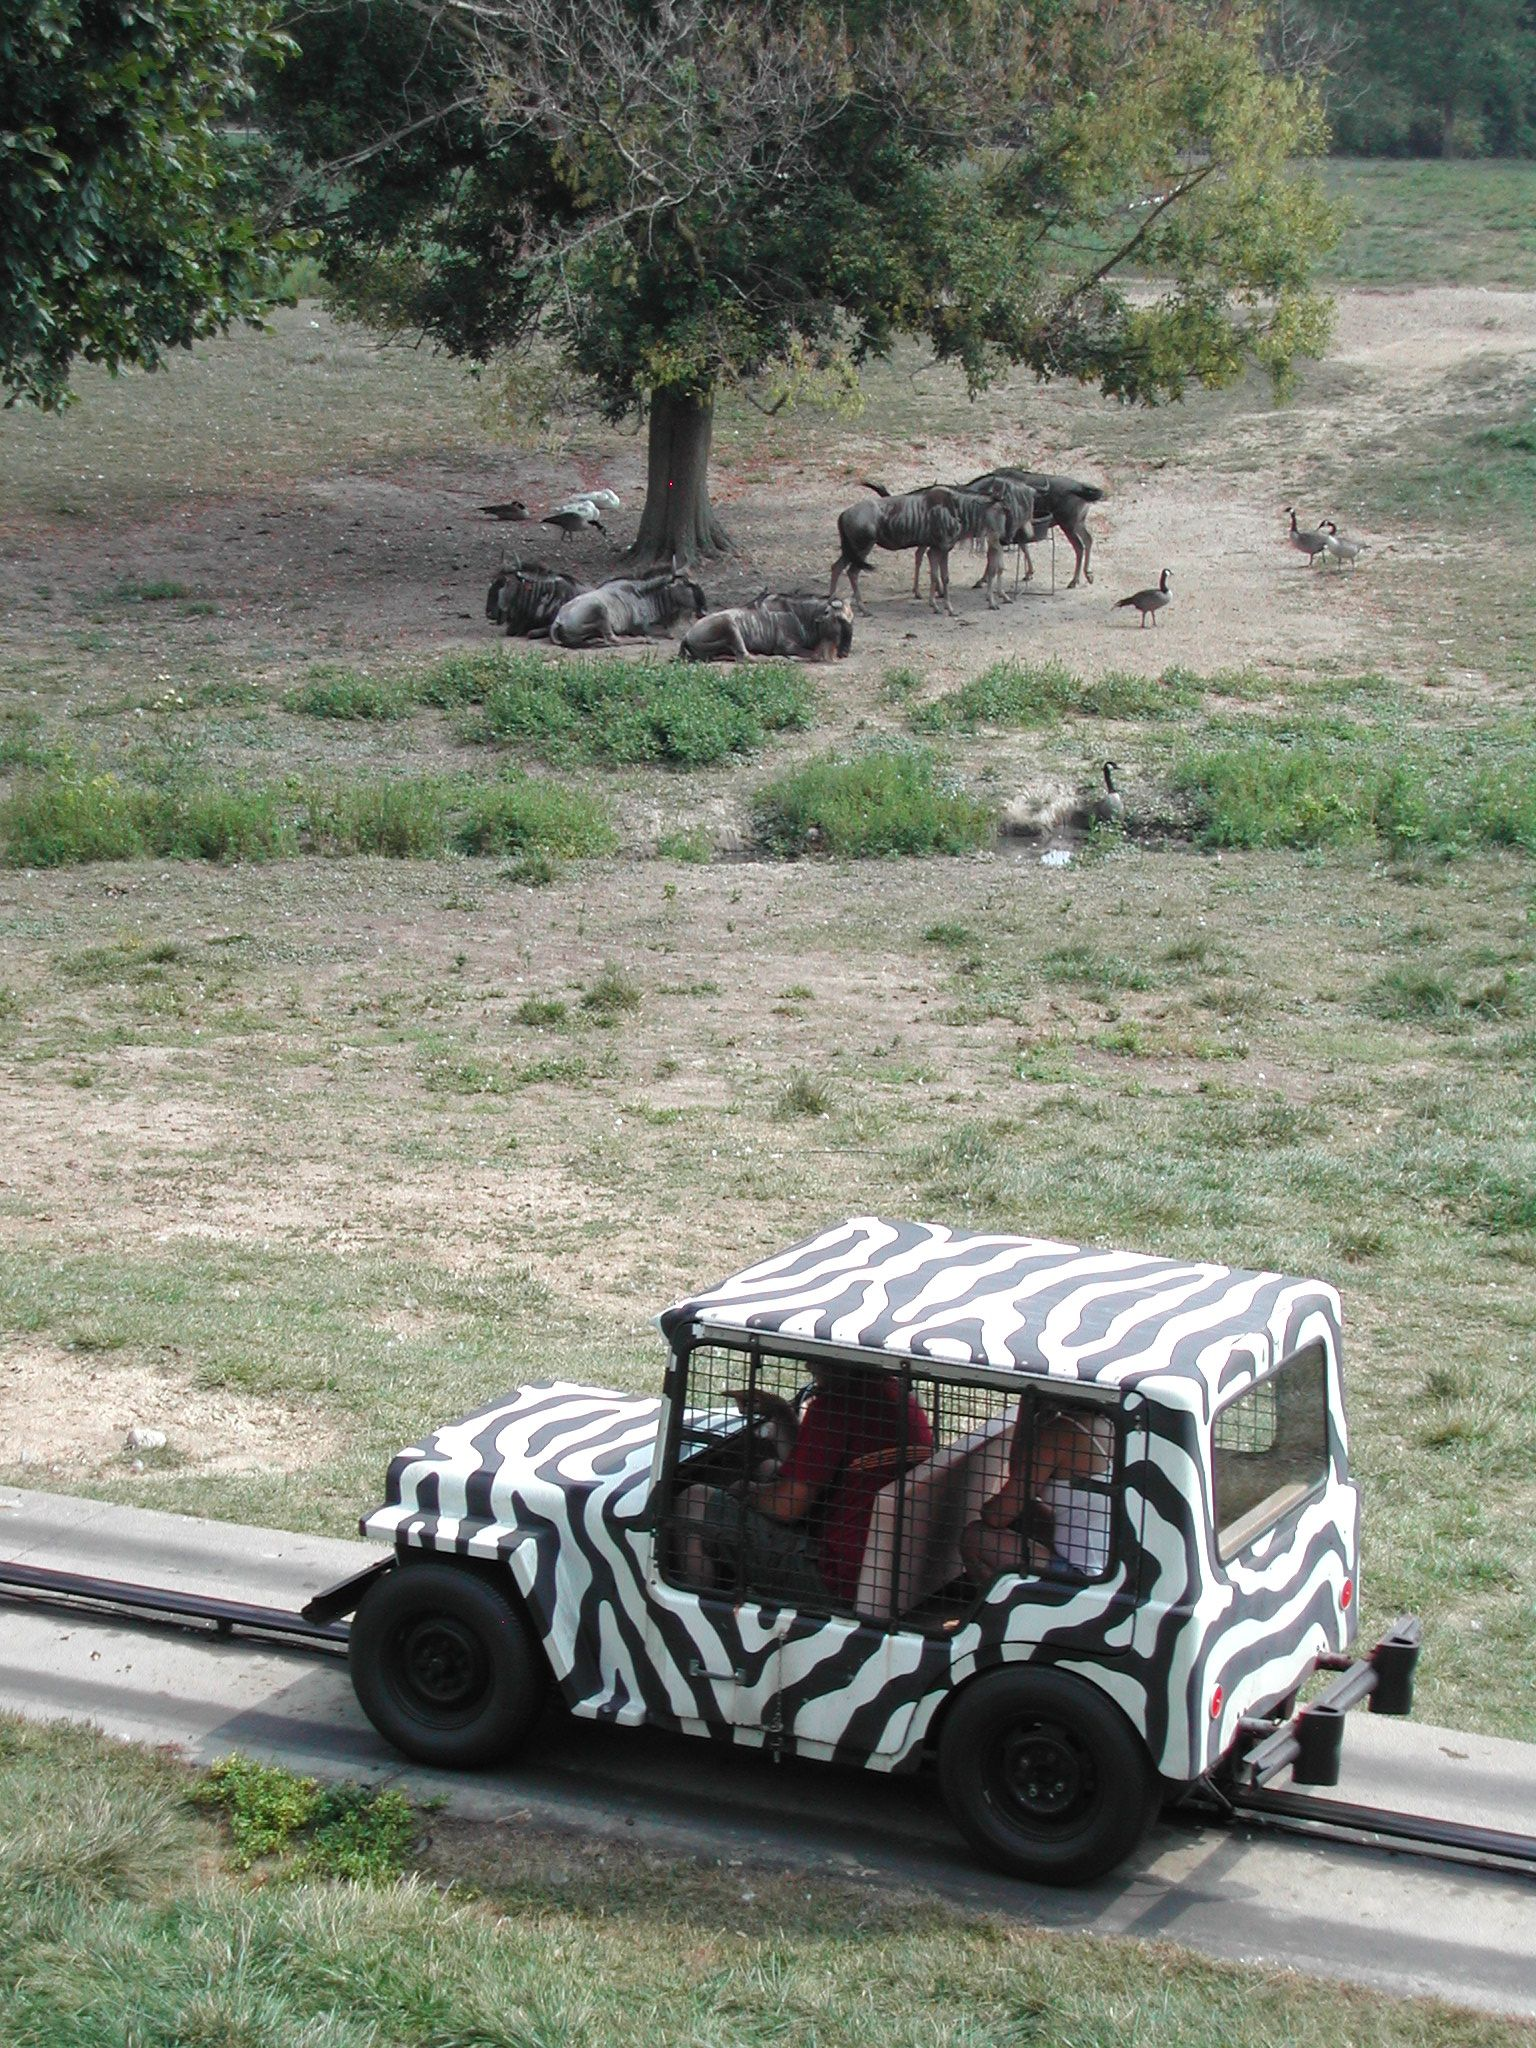 remember when the fort wayne children s zoo had the safari jeep ride through the african journey fort wayne indiana safari jeep old fort fort wayne indiana